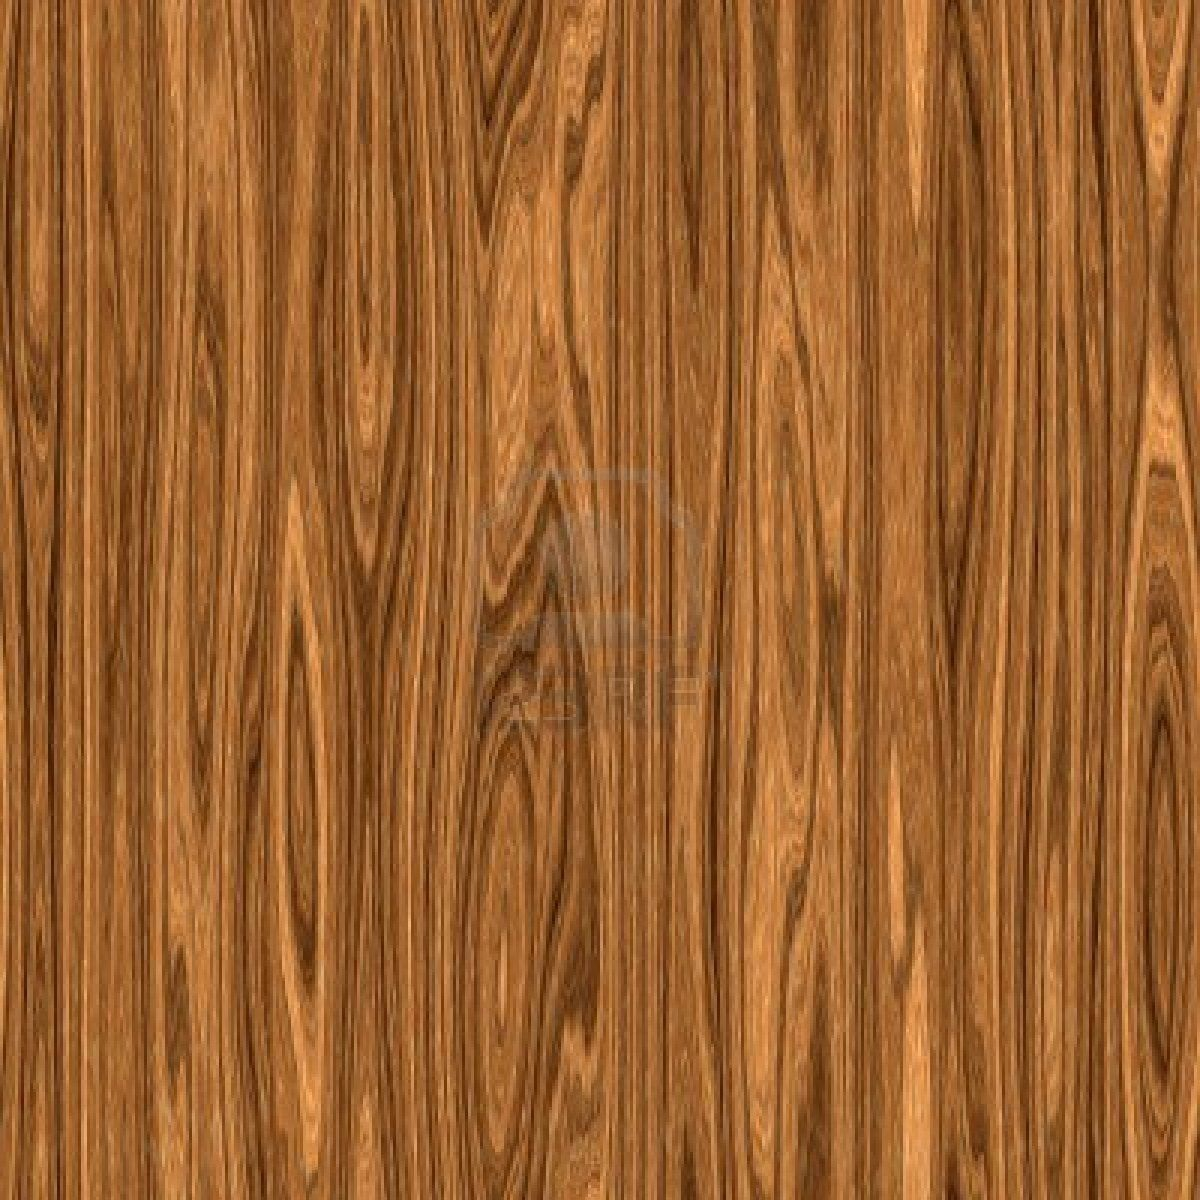 Free texture light wood wood new lugher texture - Seamless Light Brown Wood Texture With Knots 123rf 2013